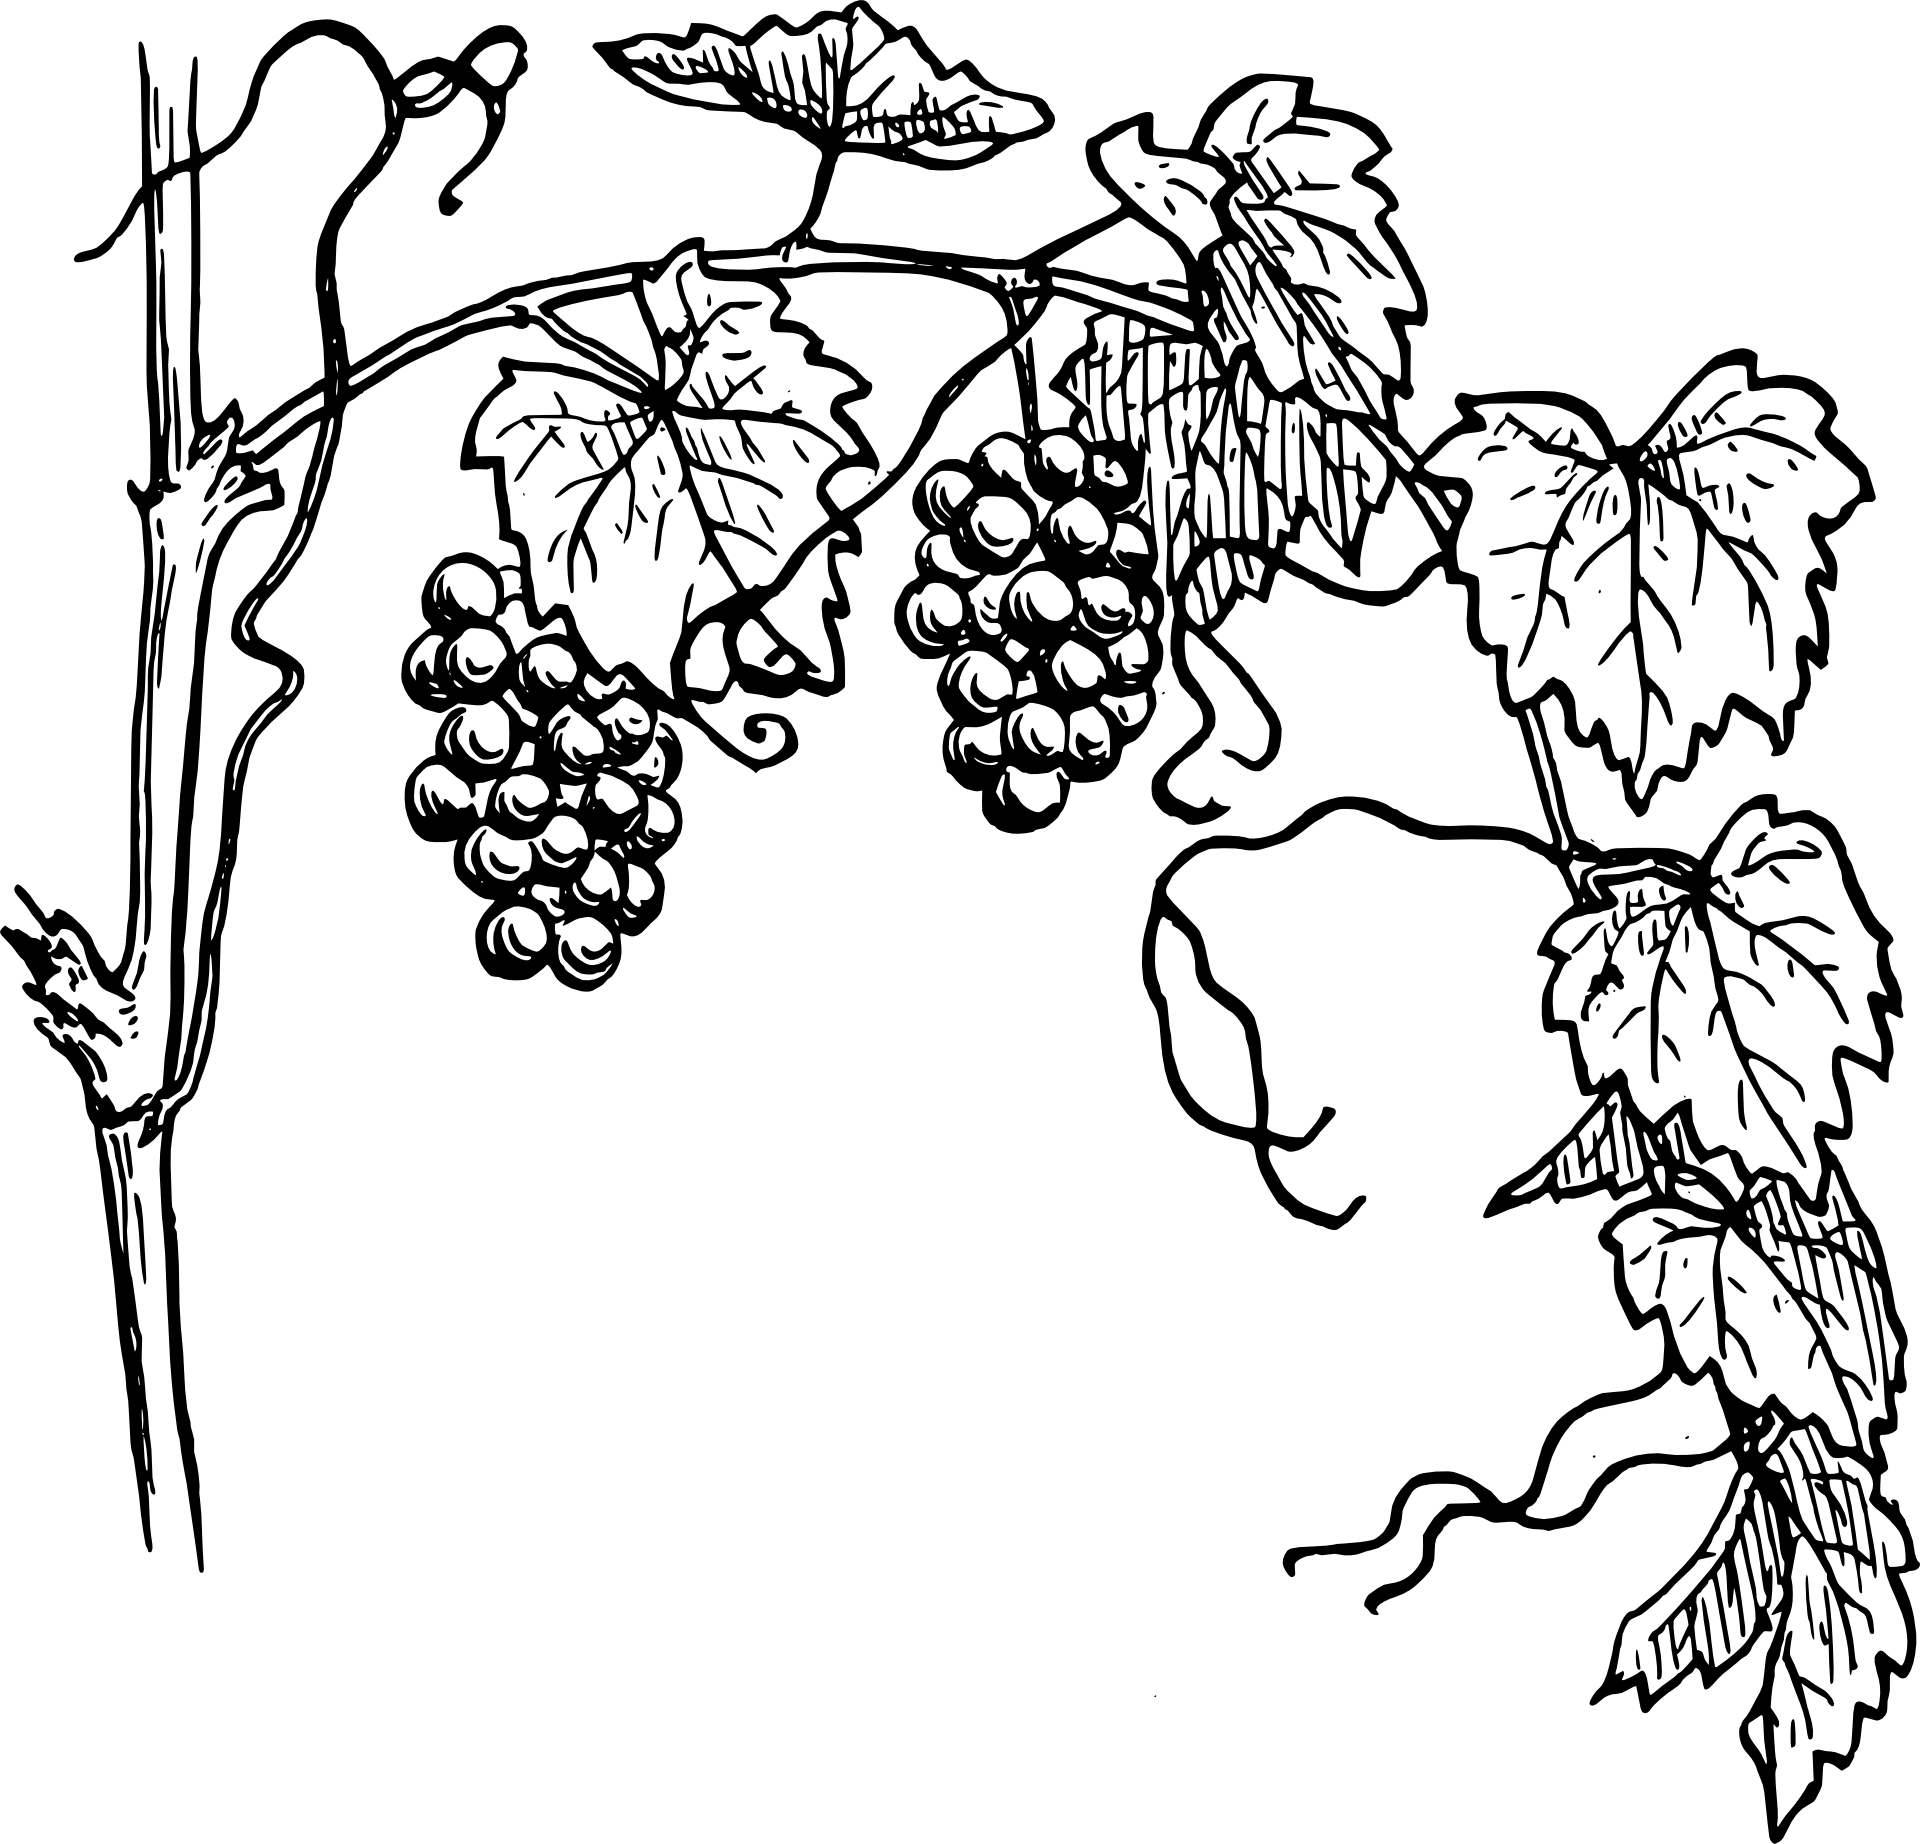 1920x1844 Drawing Amp Sketch, Grapes,fruit Vector Free Psd,vector,icons